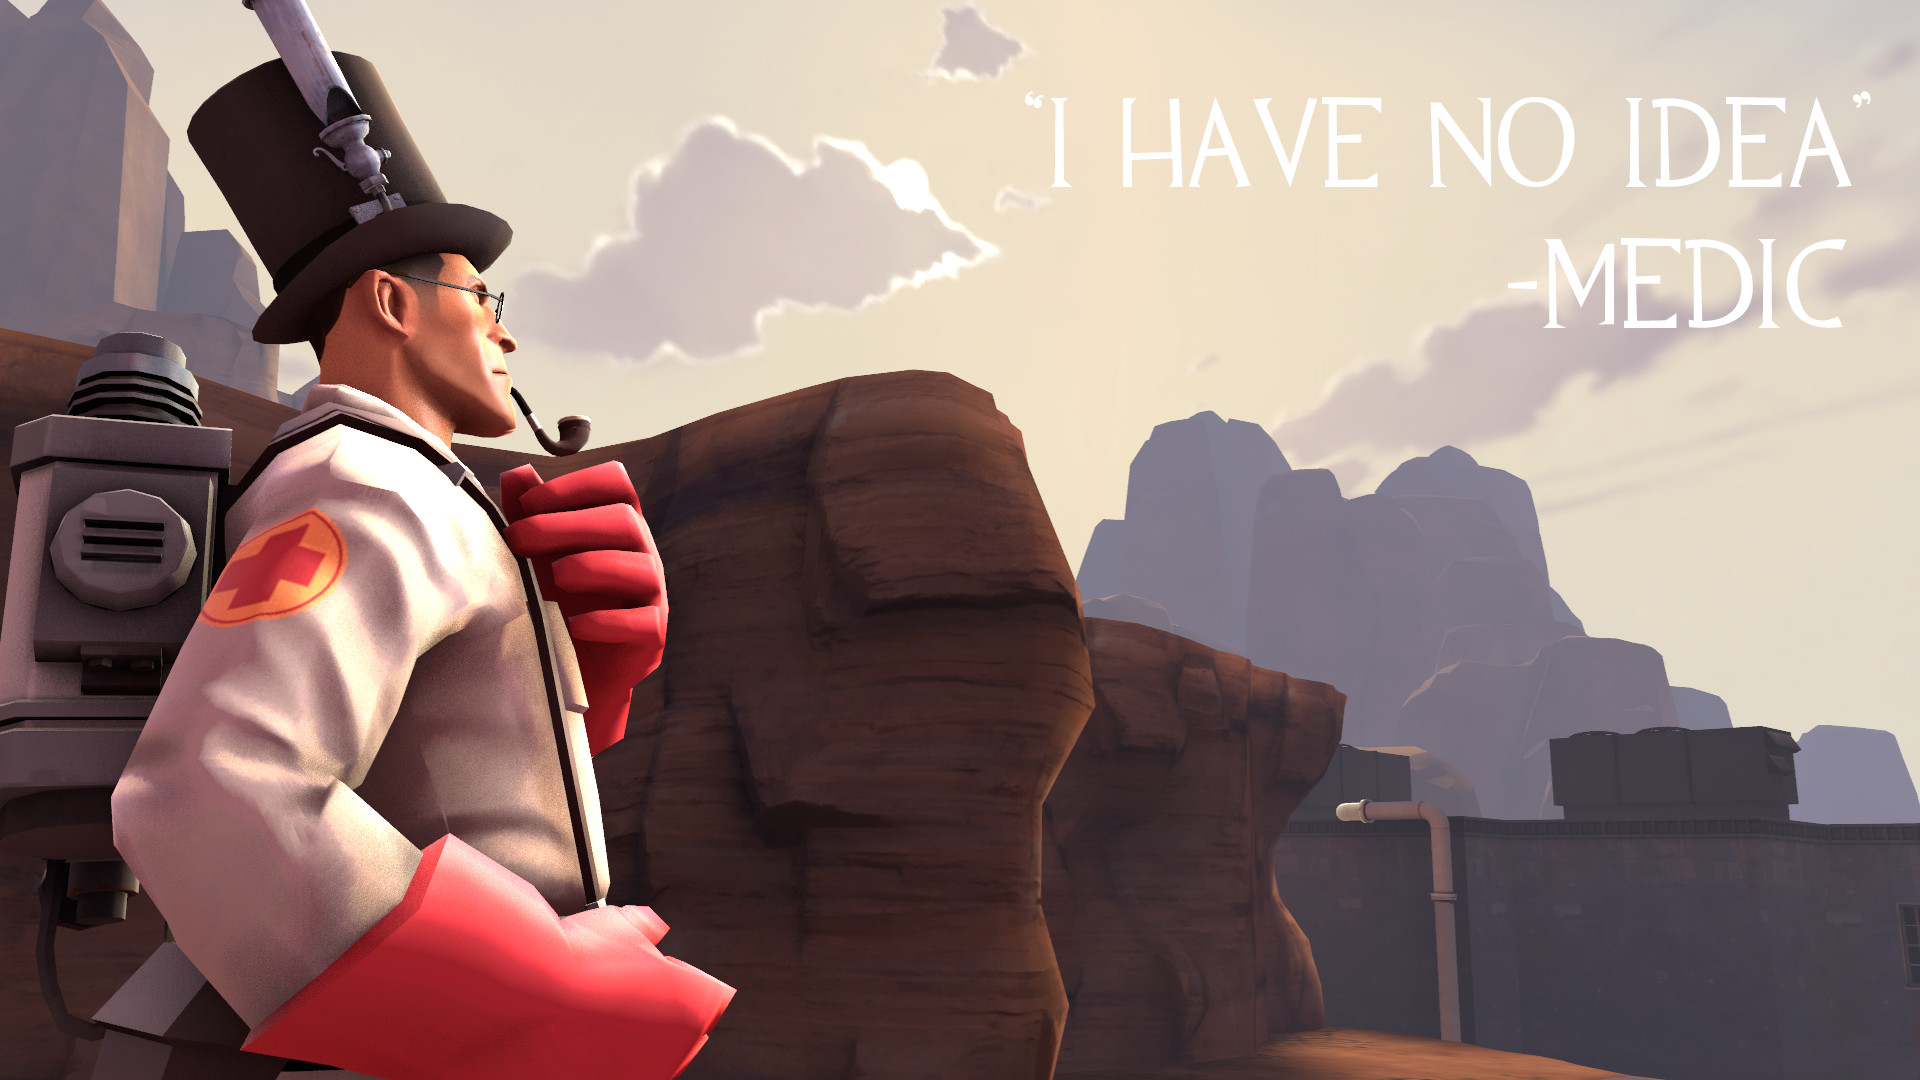 Team Fortress 2(TF2) images TF2 Medic quotes HD wallpaper and background  photos